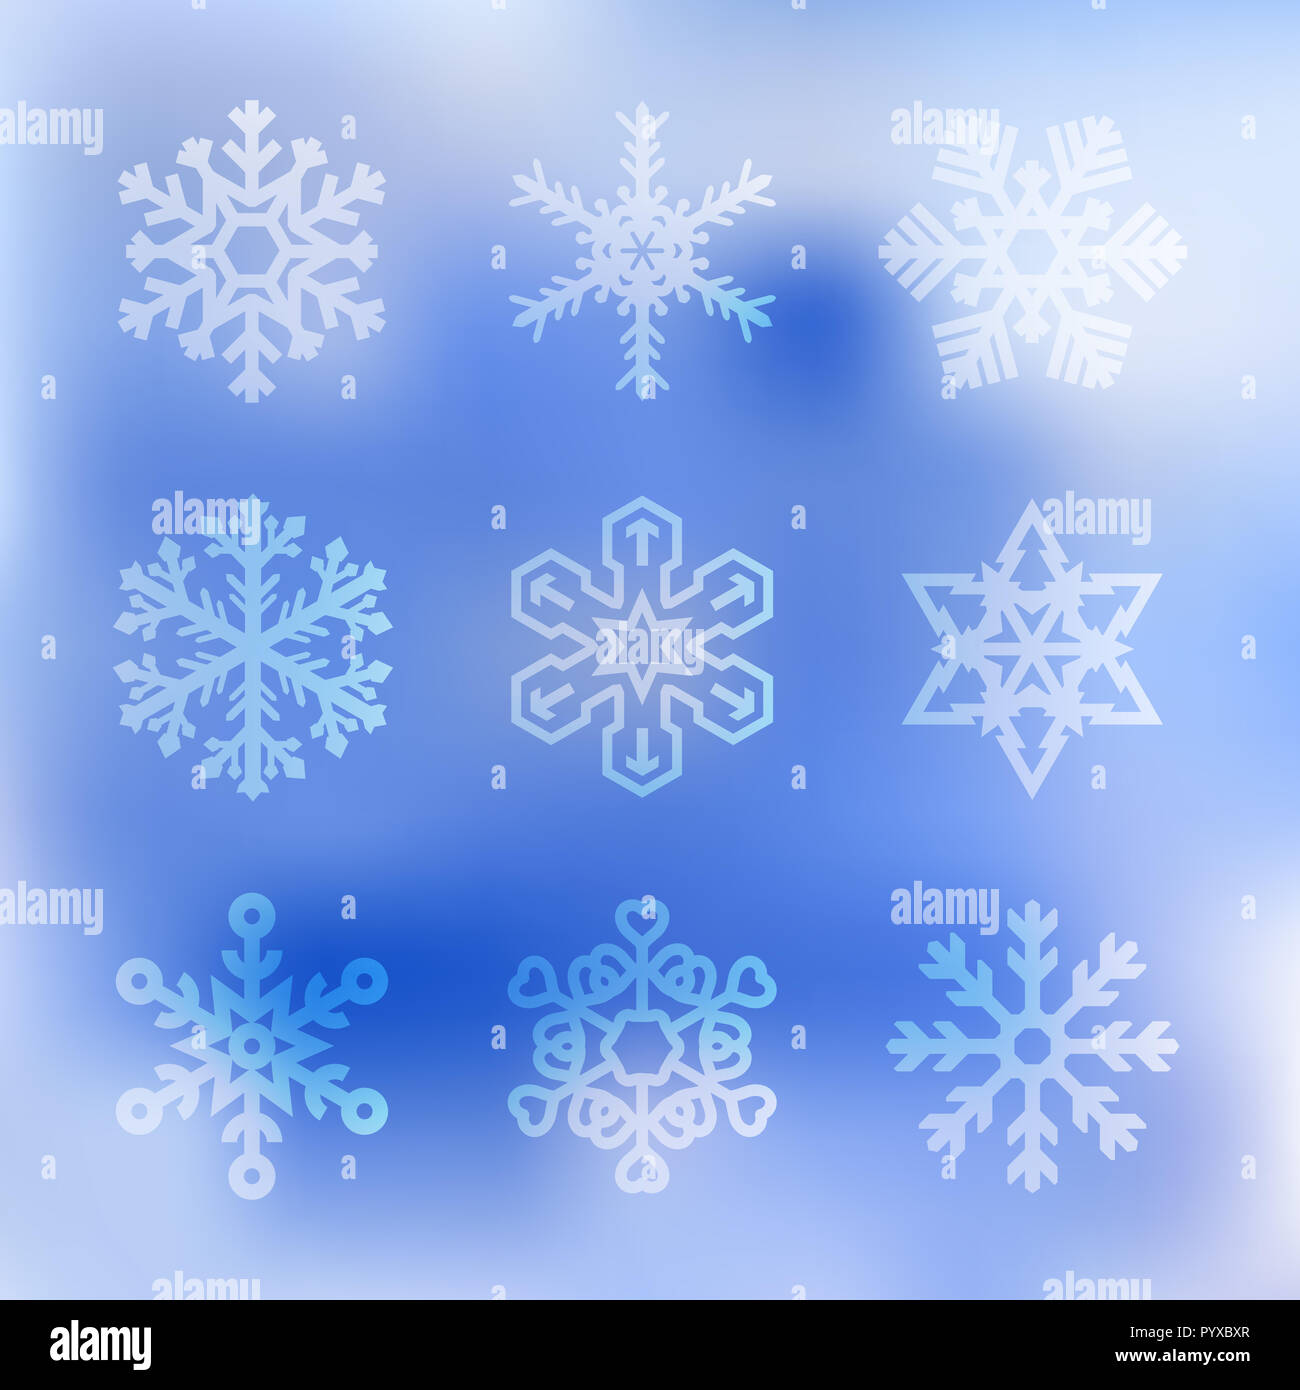 Set of Snowflakes of Different Shapes on a Blue Sky Background. Merry Christmas, Happy New Year Design Elements. Resource for Creating Postcards, Cale - Stock Image